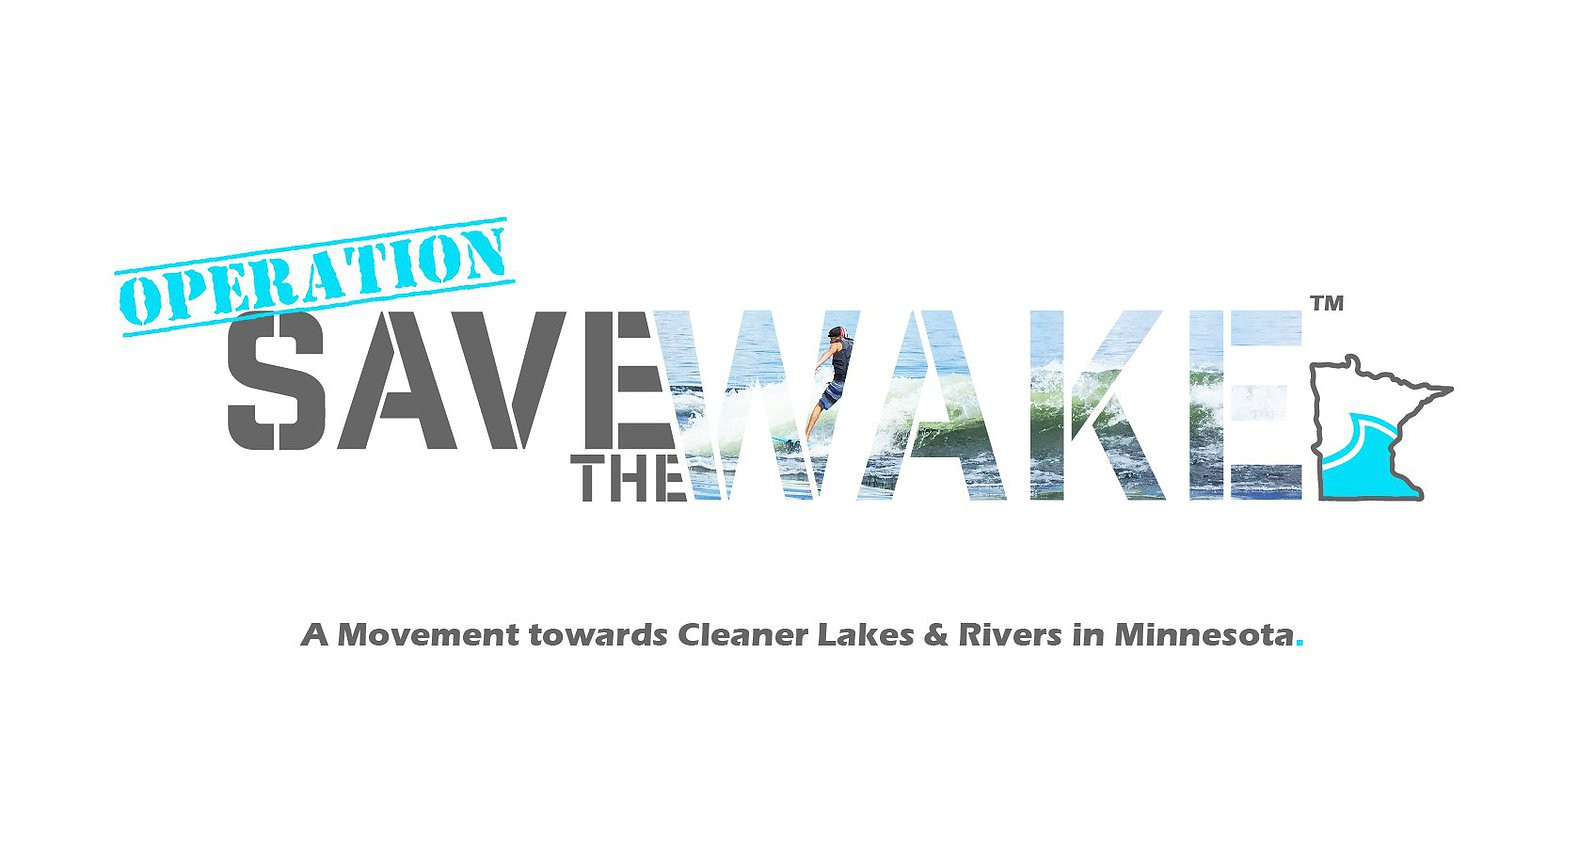 Operation: Save the Wake